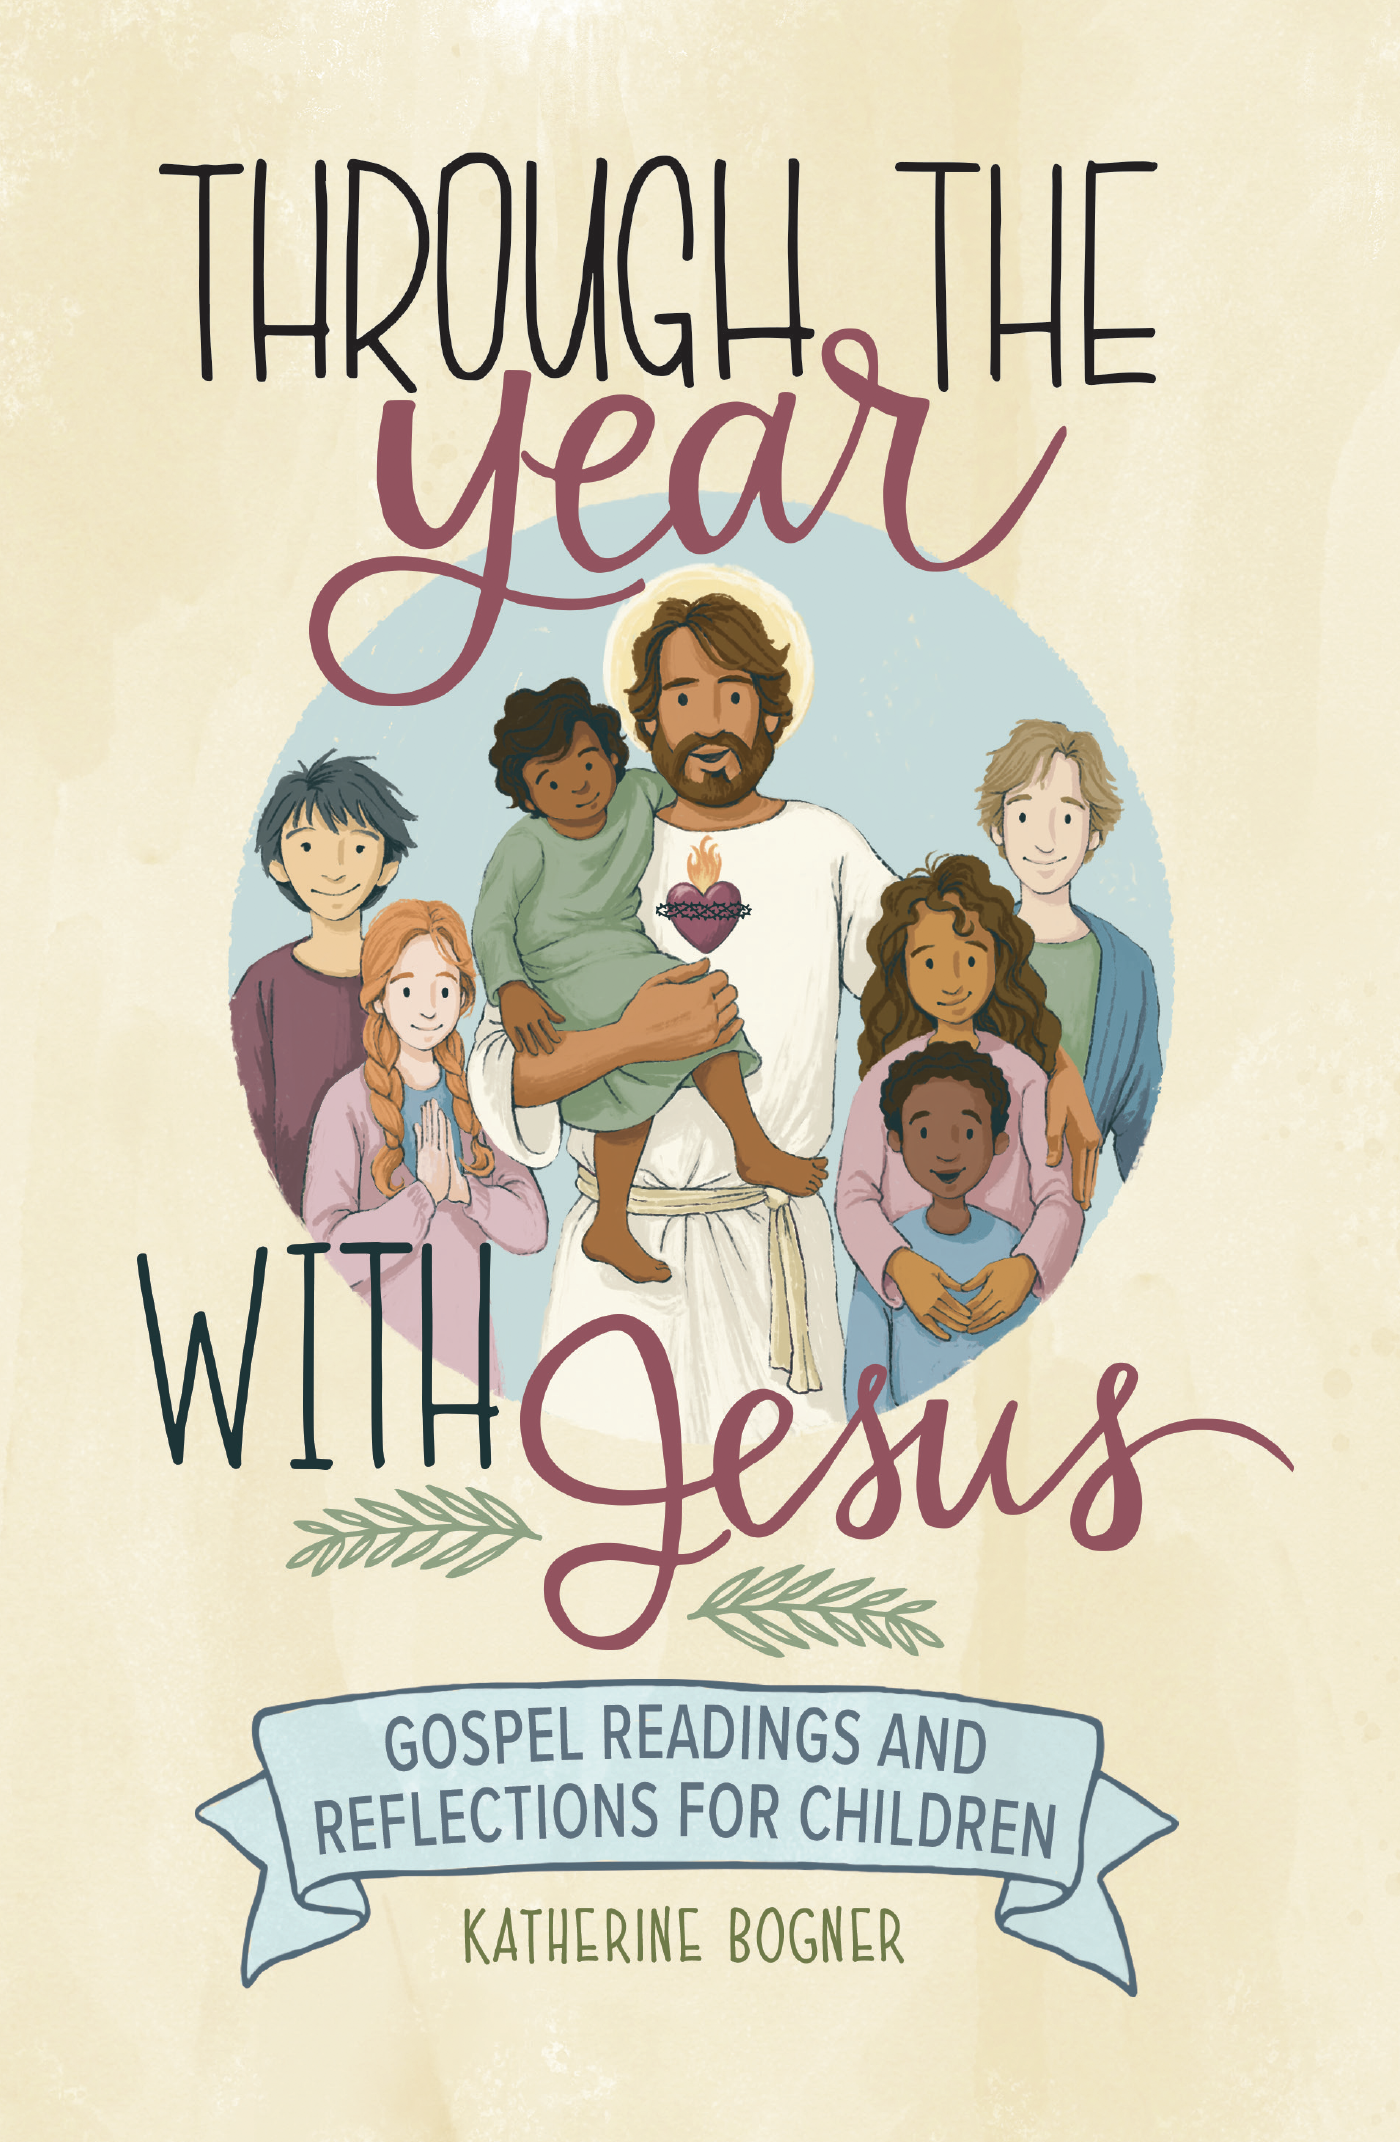 Through-the-Year-with-Jesus-Cover